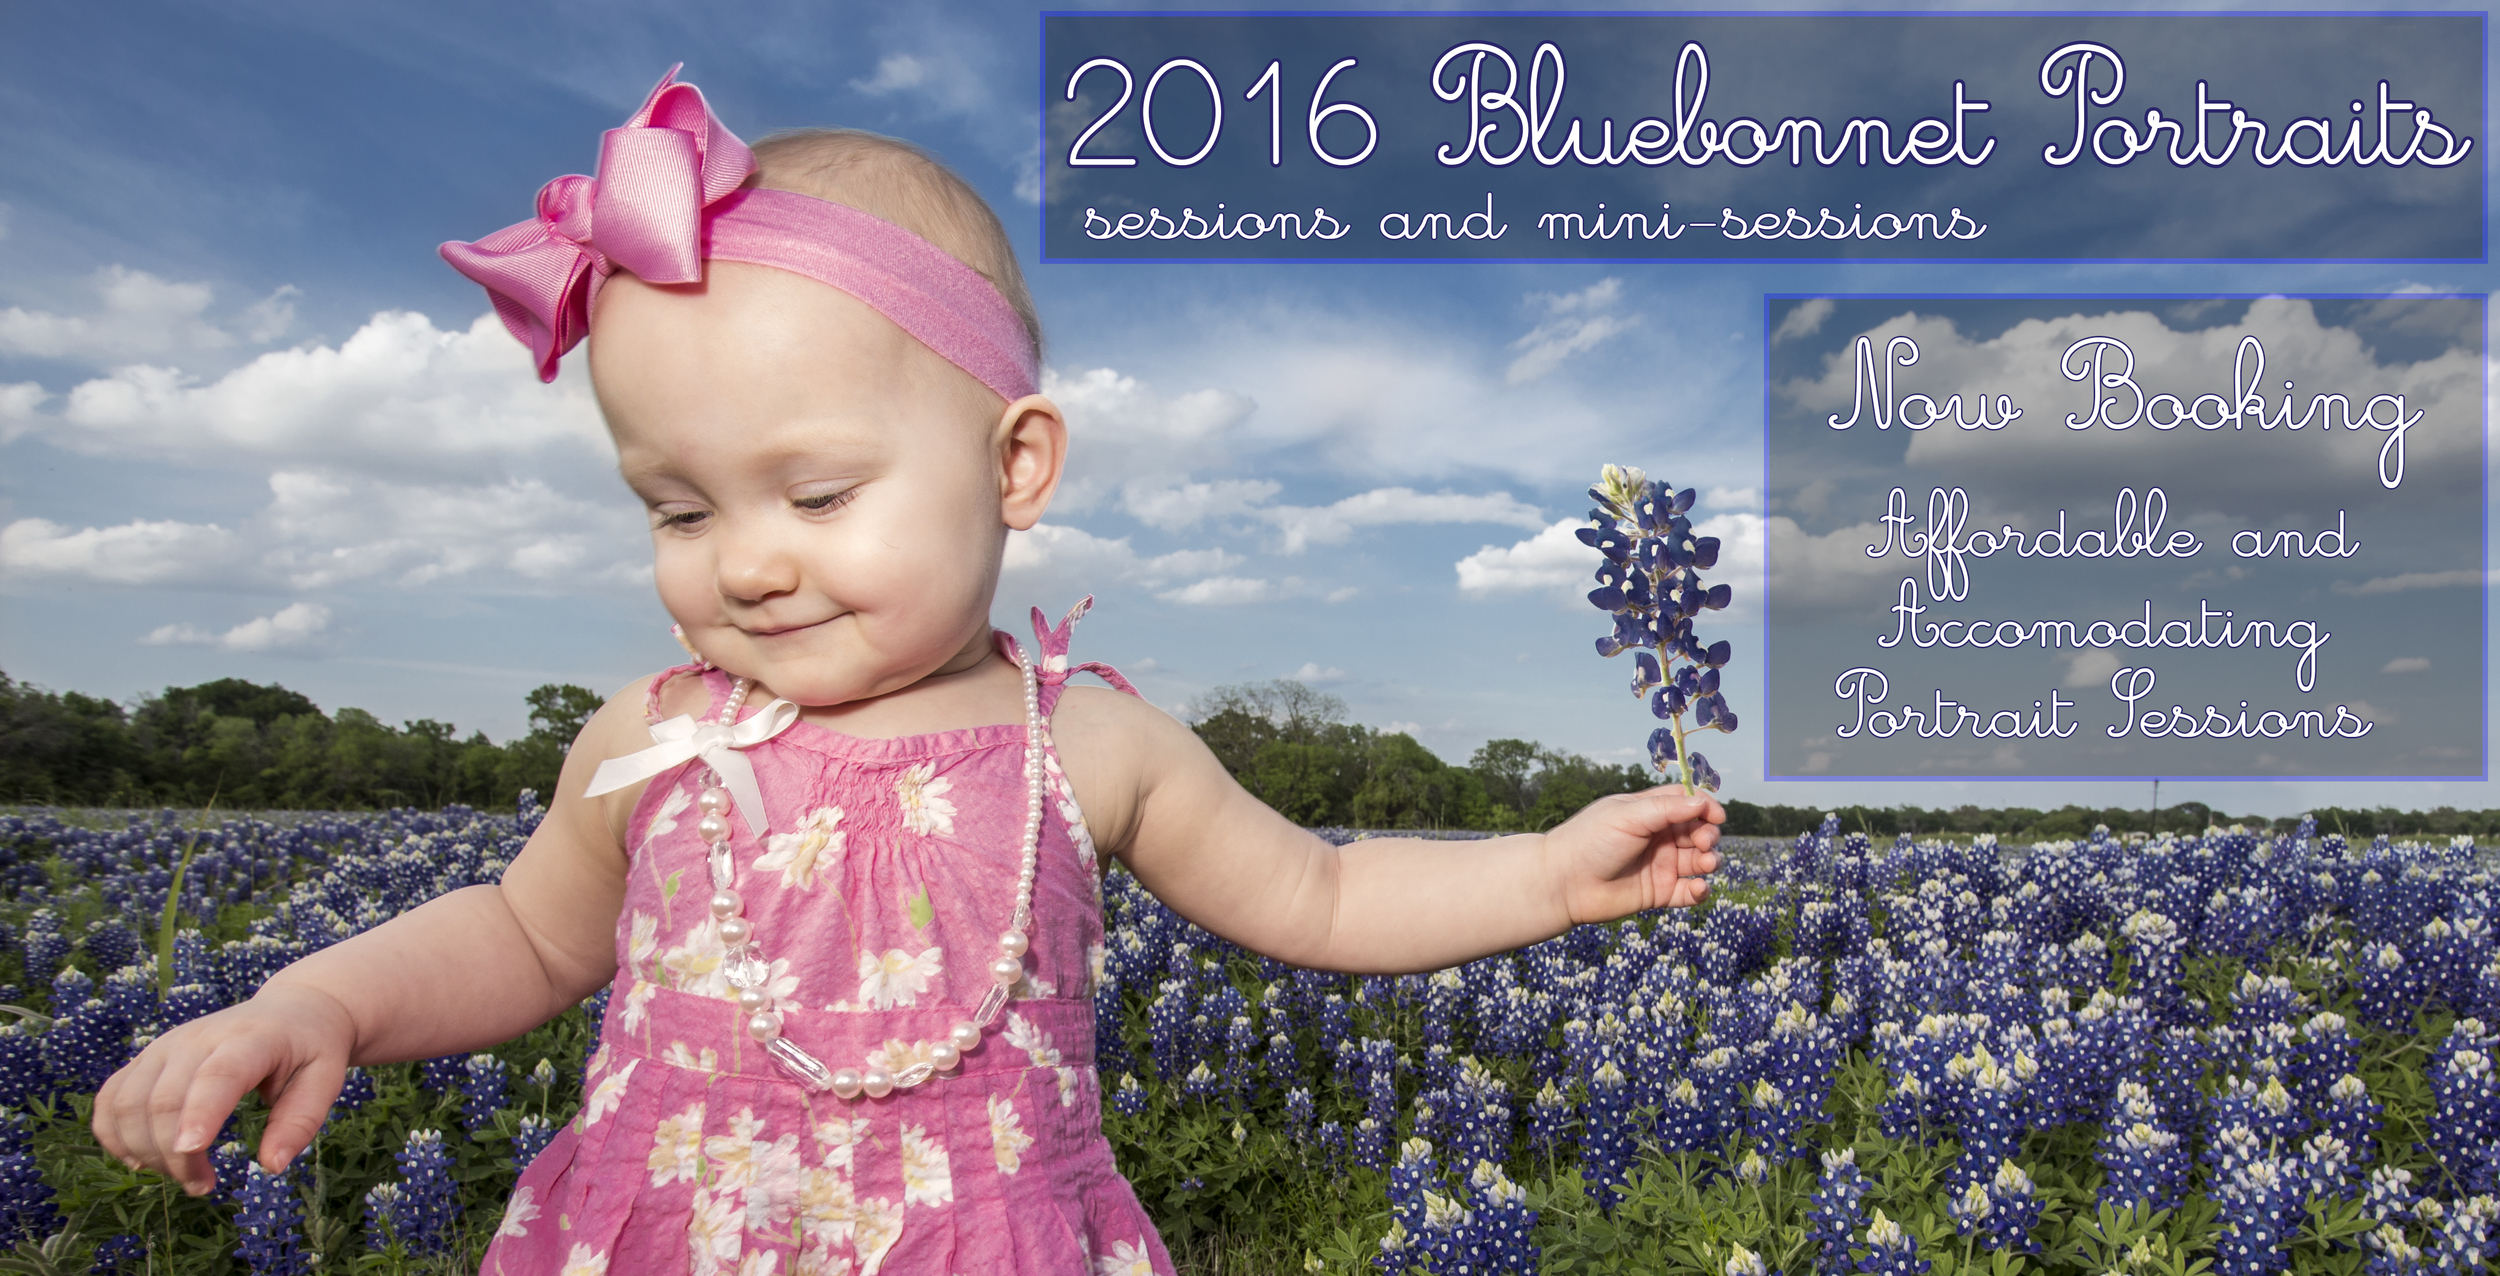 I offer affordable sessions and mini-sessions at some of the best bluebonnet spots Texas has to offer including Ennis and Spicewood. Click here for scheduling and other information.